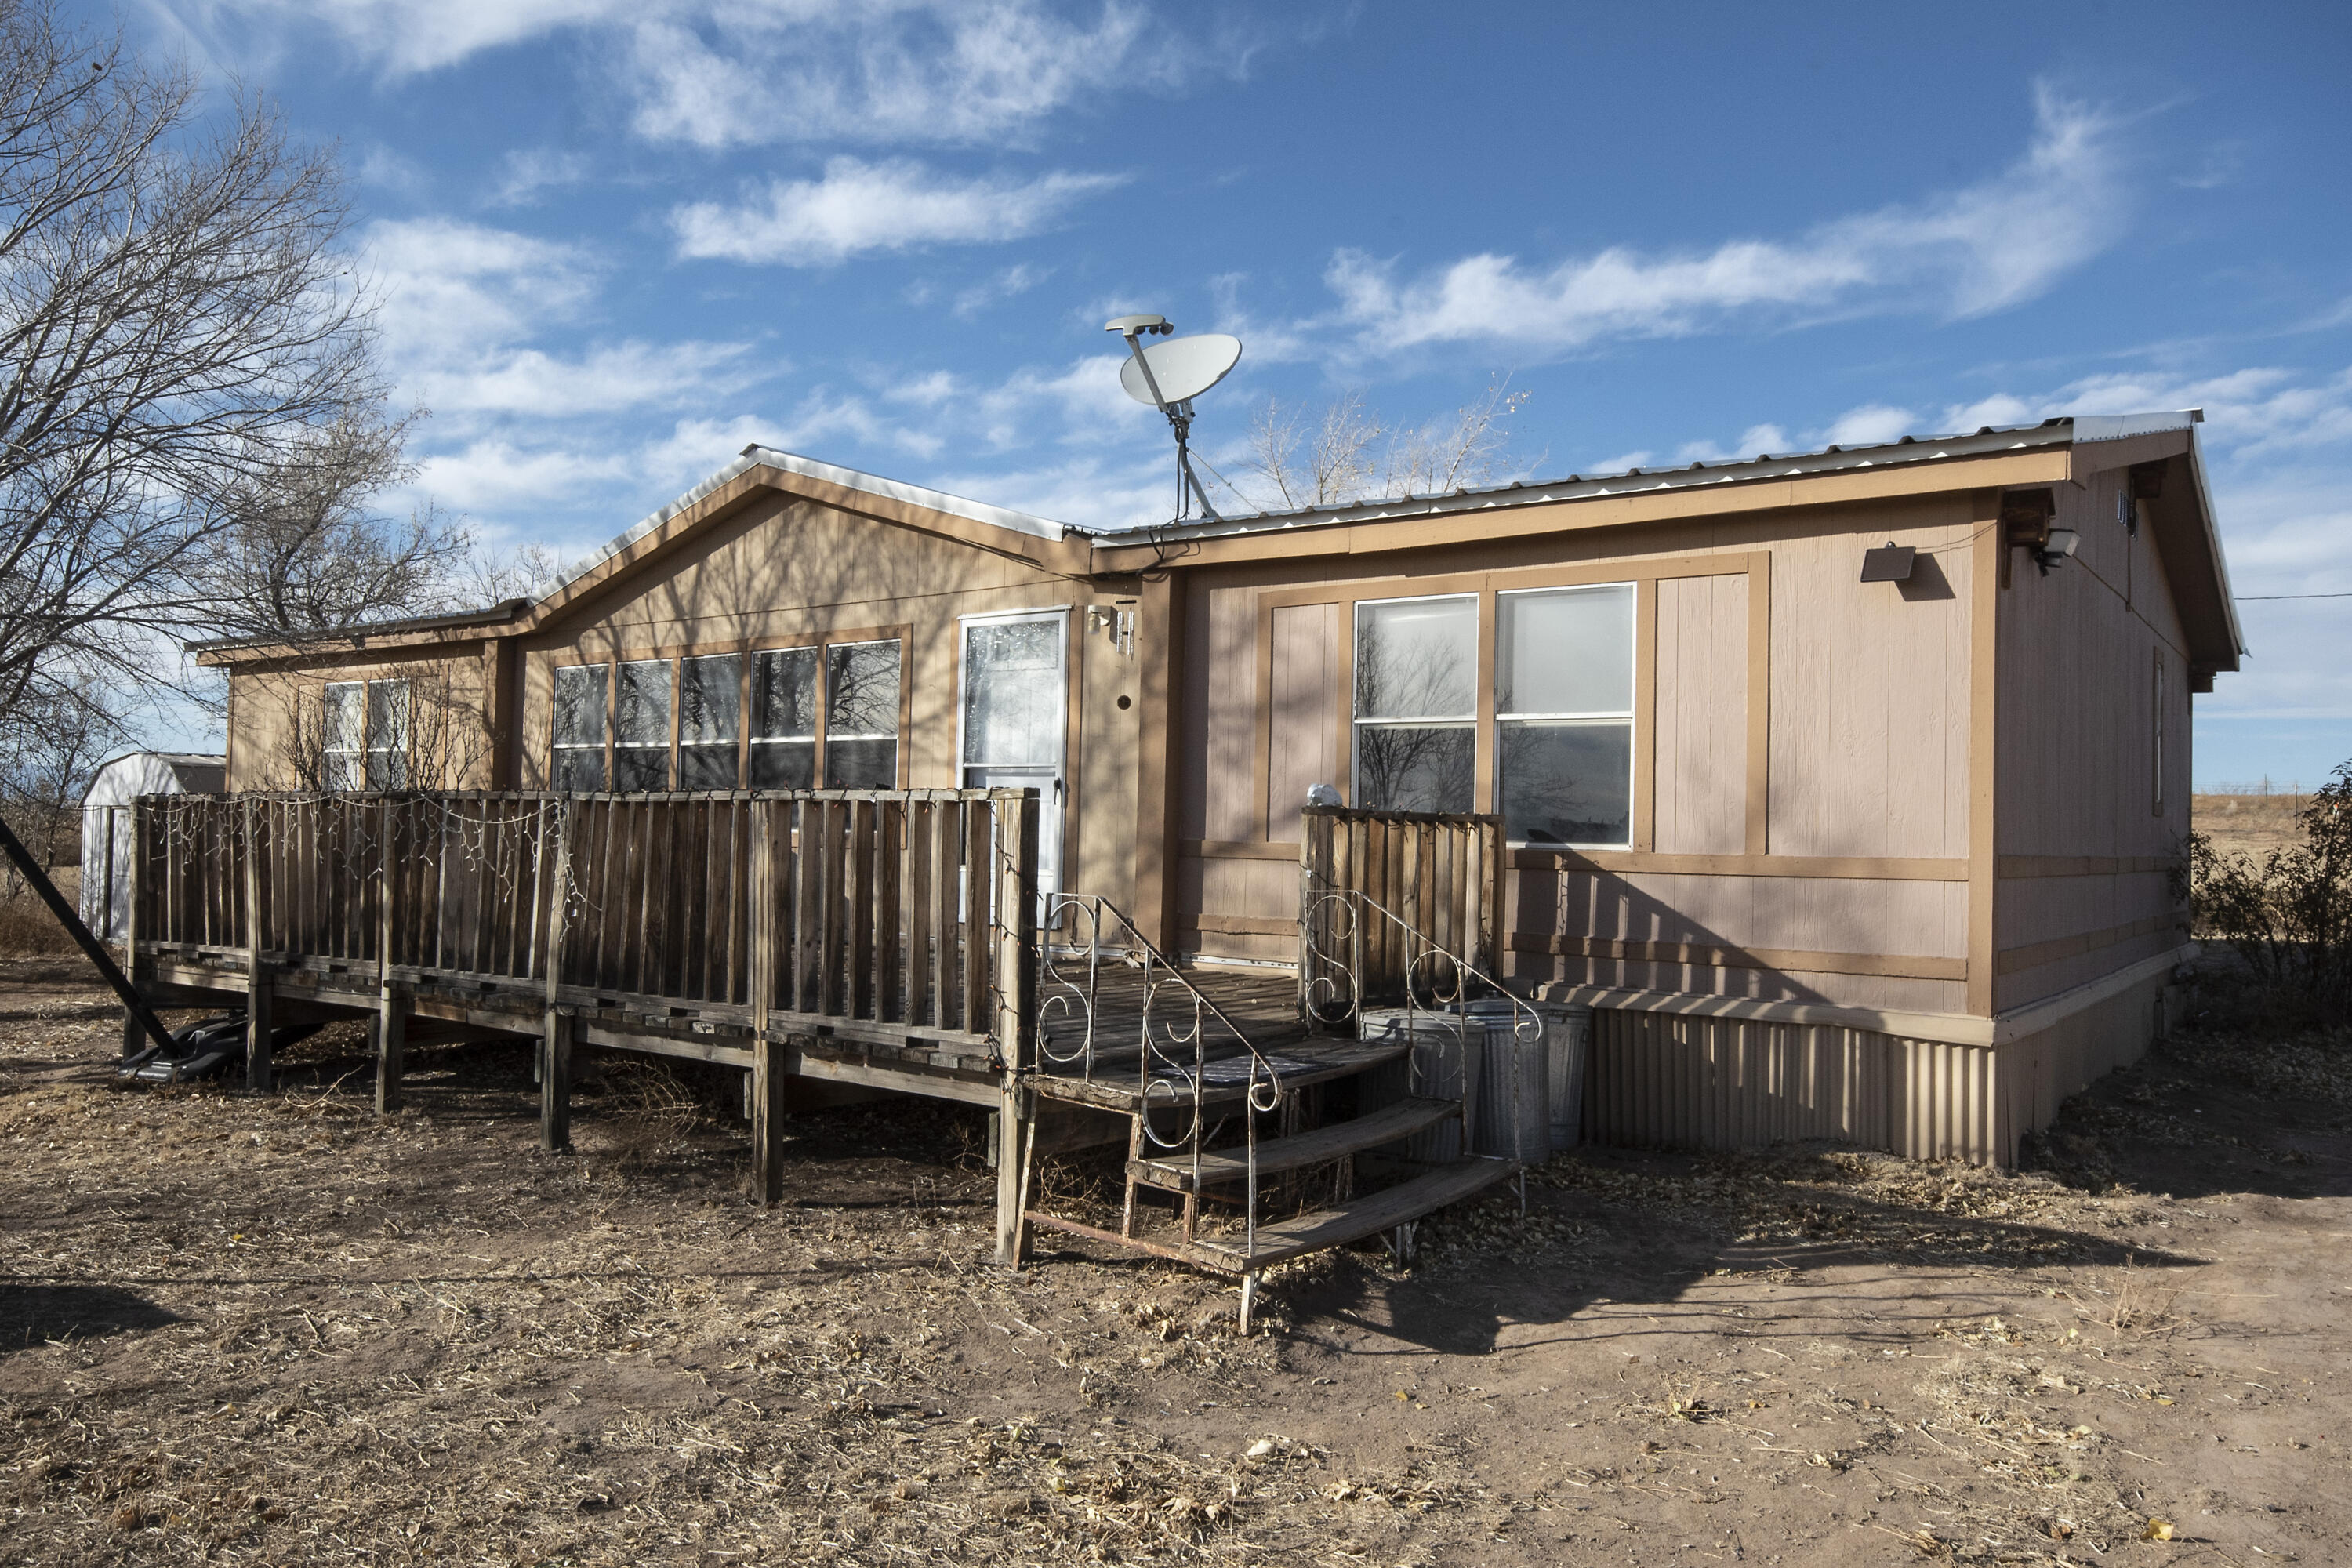 2 and a half acre fully fenced parcel with a 3 bed 2 bath 1676 square foot doublewide on a permanent foundation. Home was built in 1993, has two living areas, 2 full baths. Newer Septic system in the last three years, metal roof, nice open space, quiet country living!